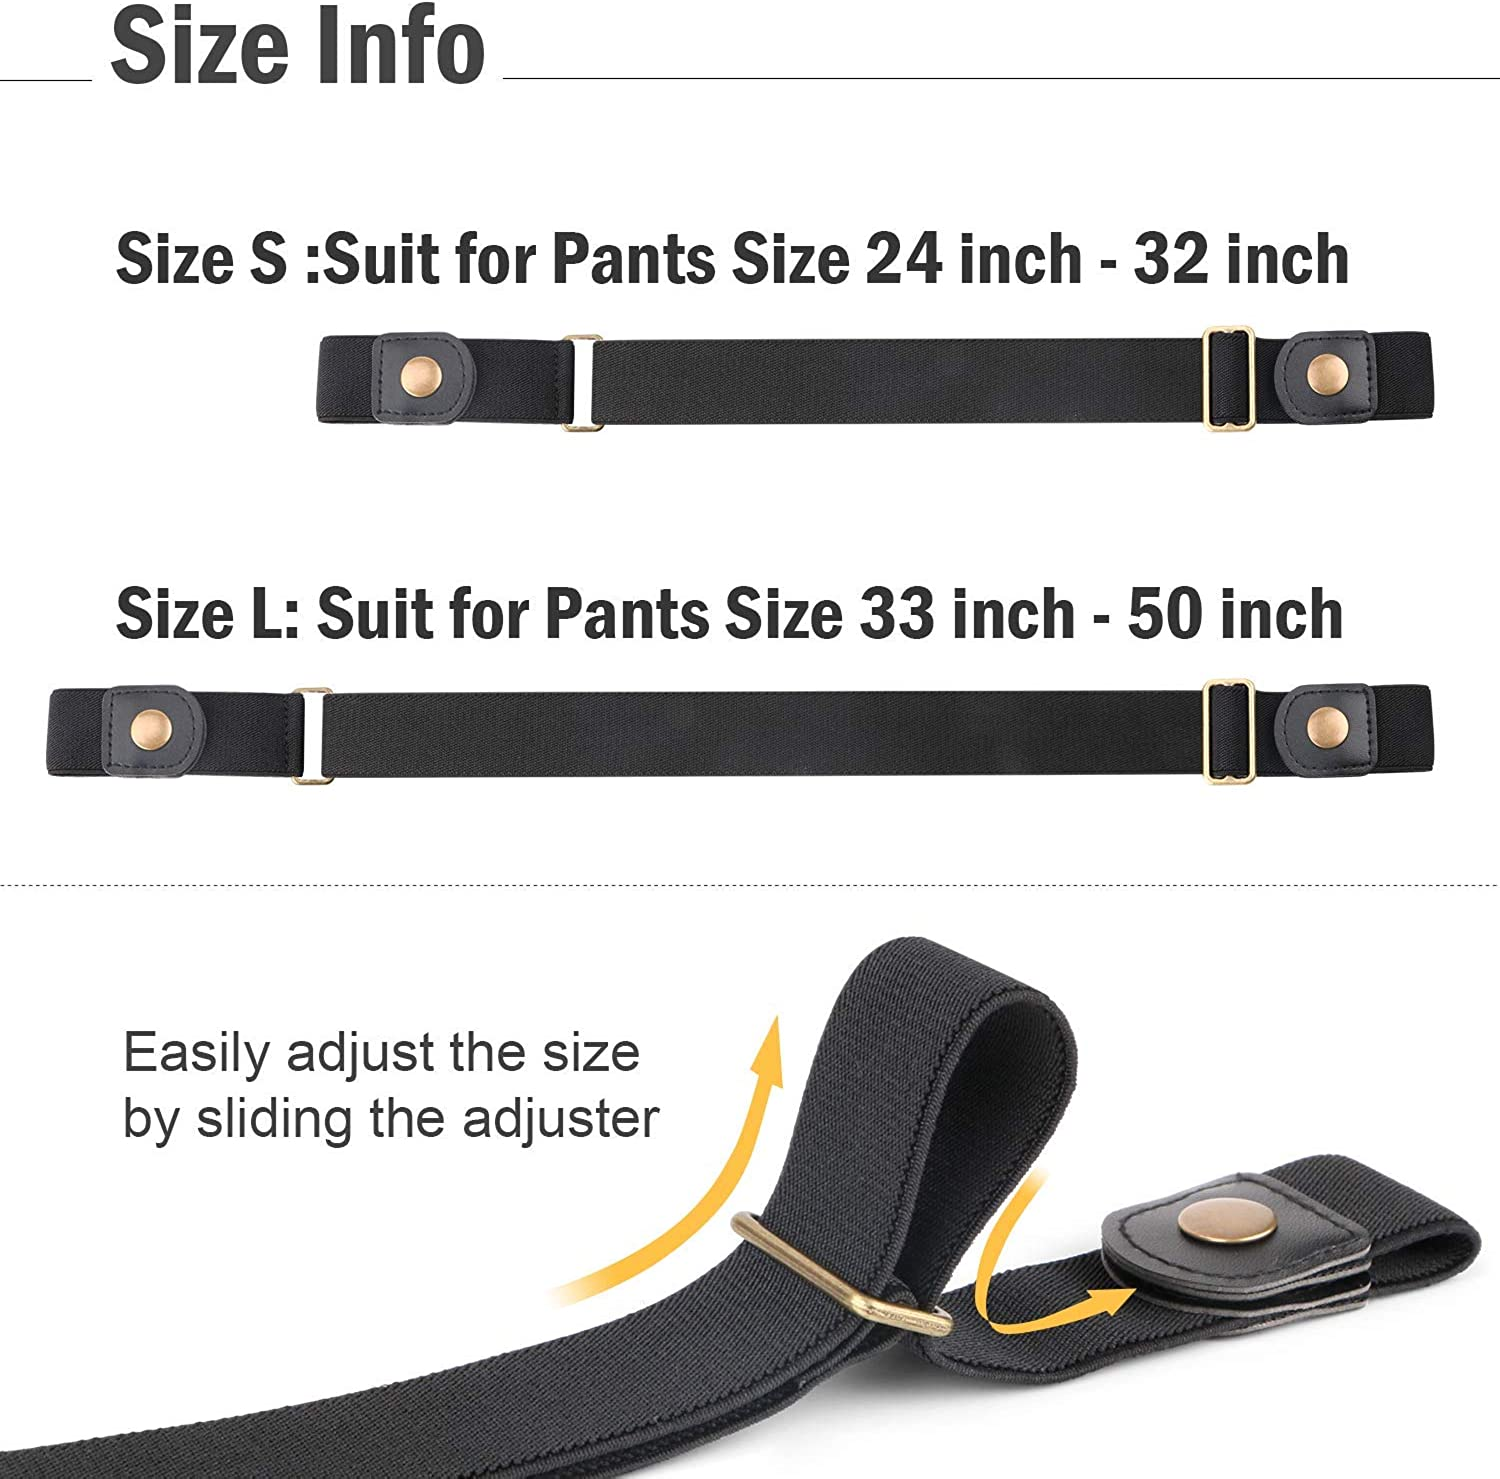 Buckle Free Belt Women Stretch Plus Size Belt No Buckle//Show Invisible Belt for Jeans Pants Dresses by WERFORU